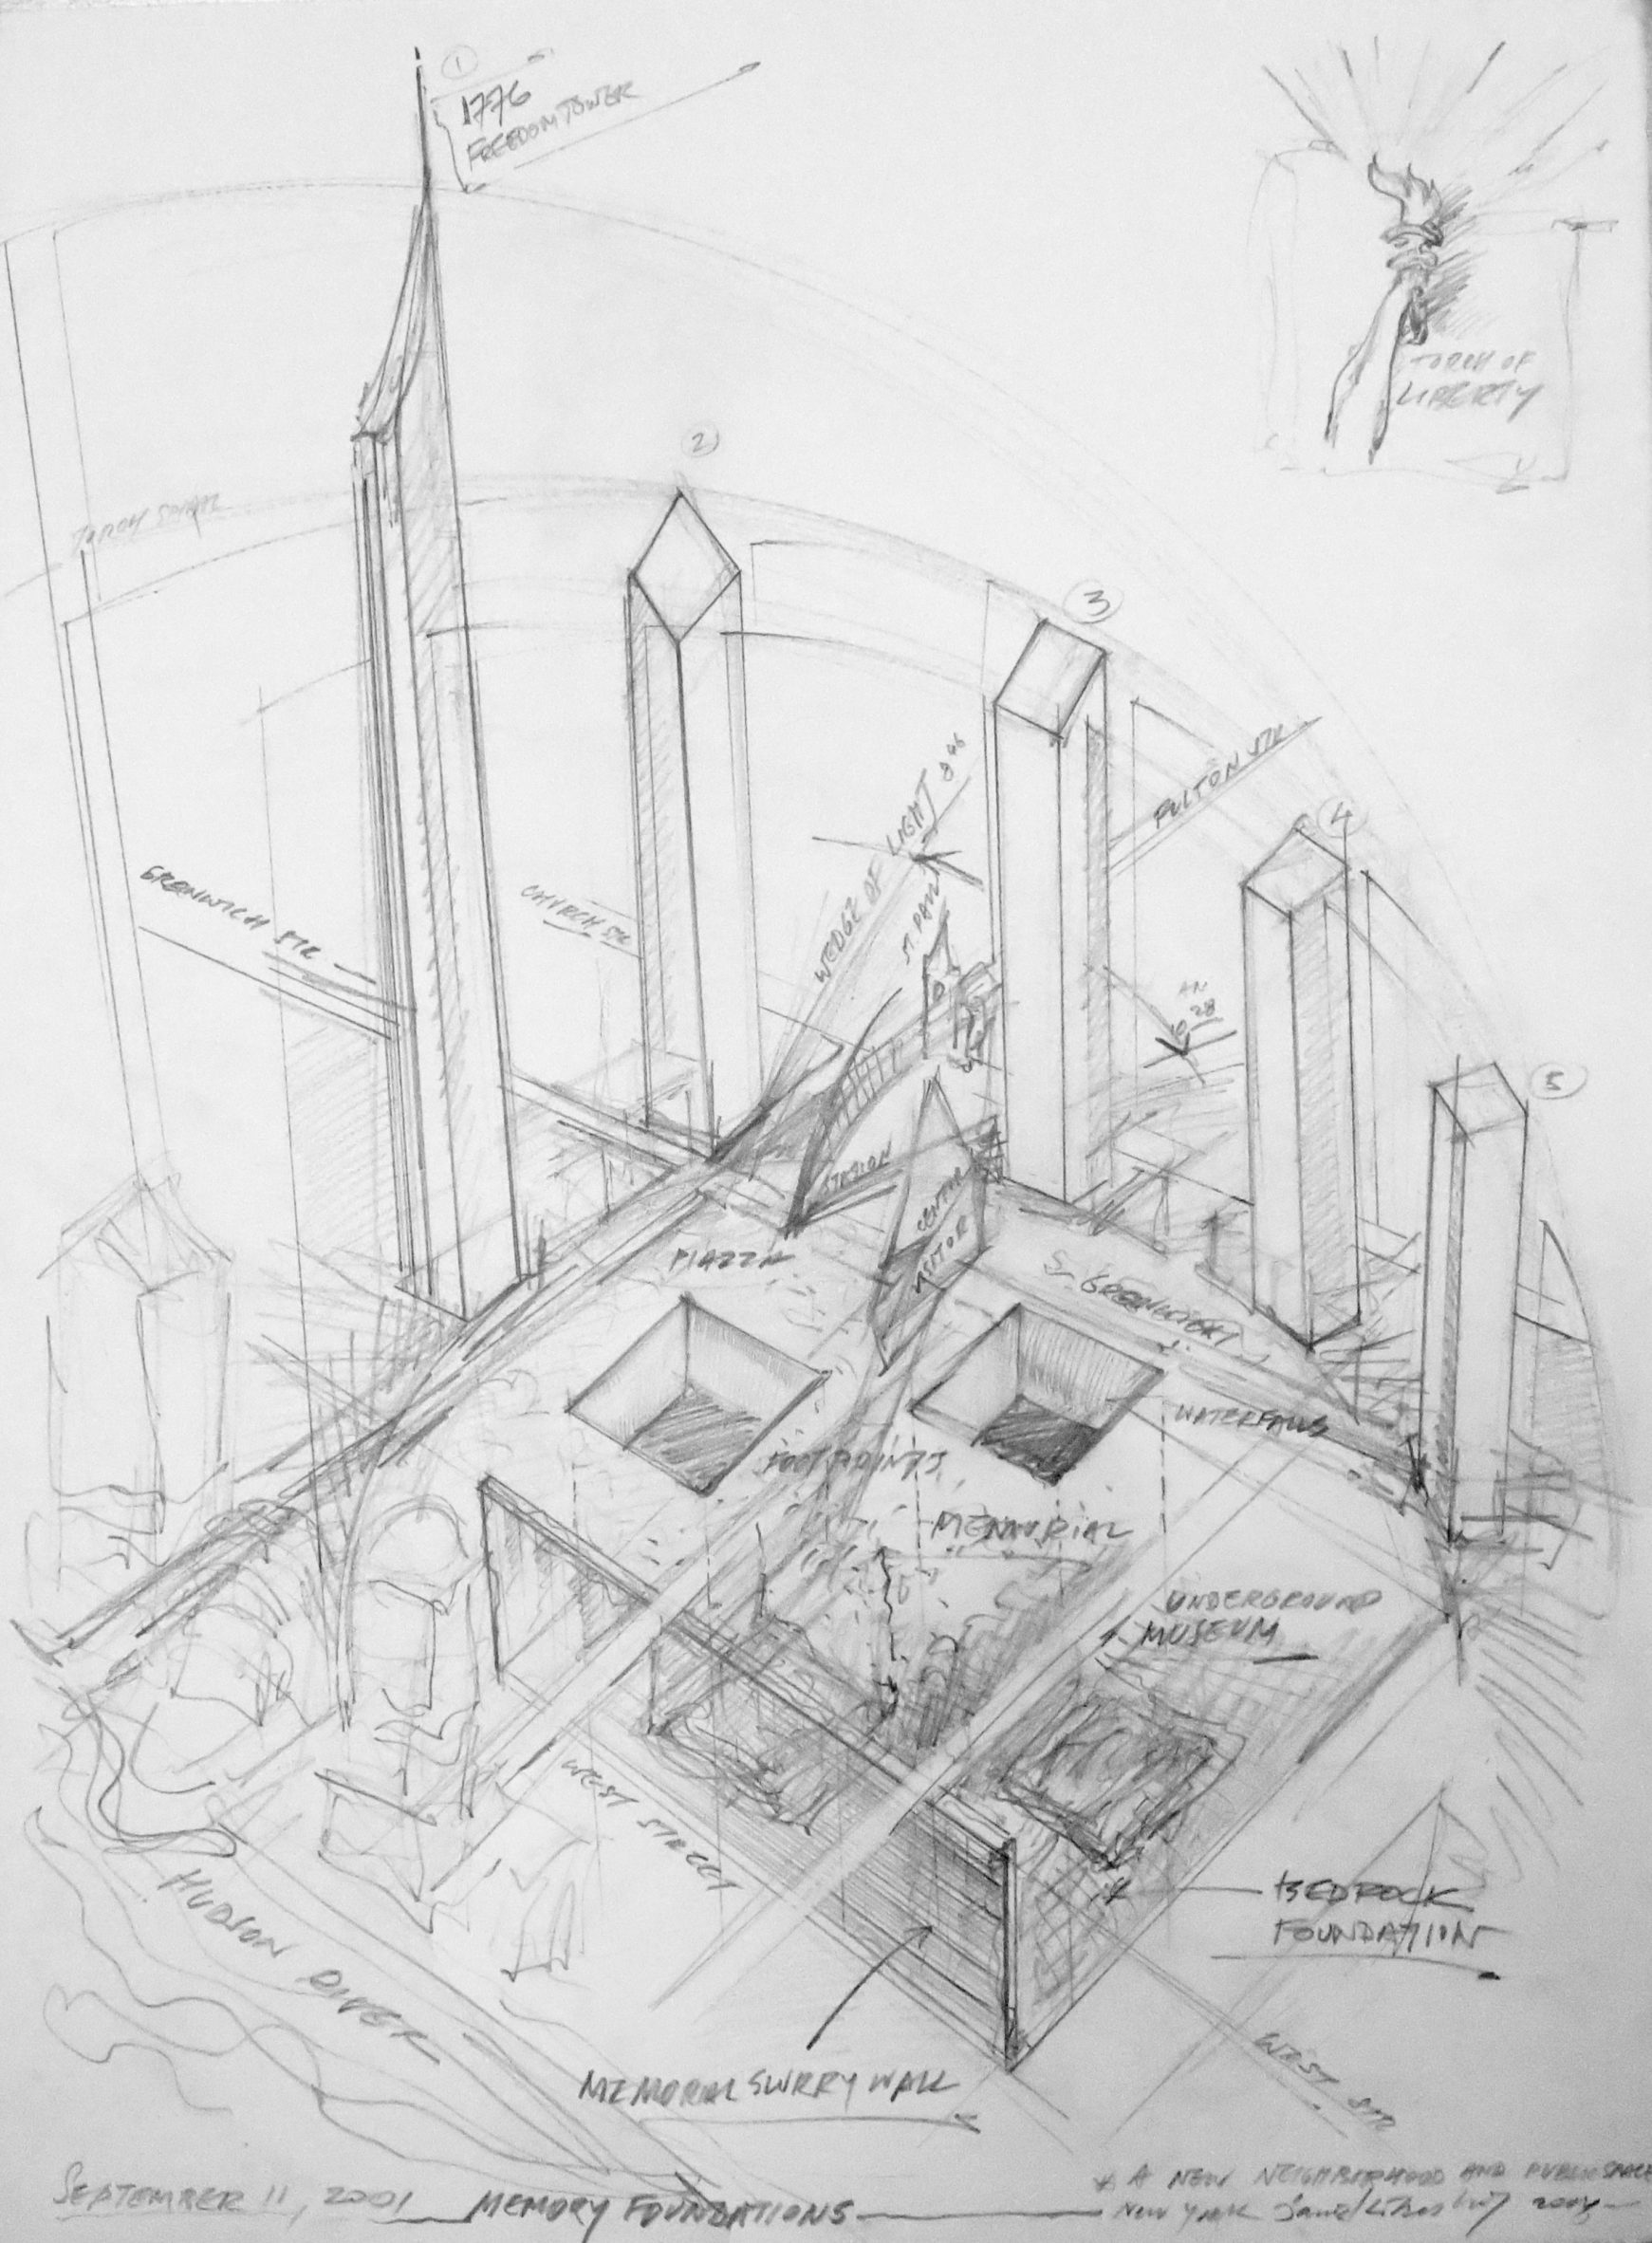 Sketch by Daniel Libeskind of World Trade Centre site masterplan